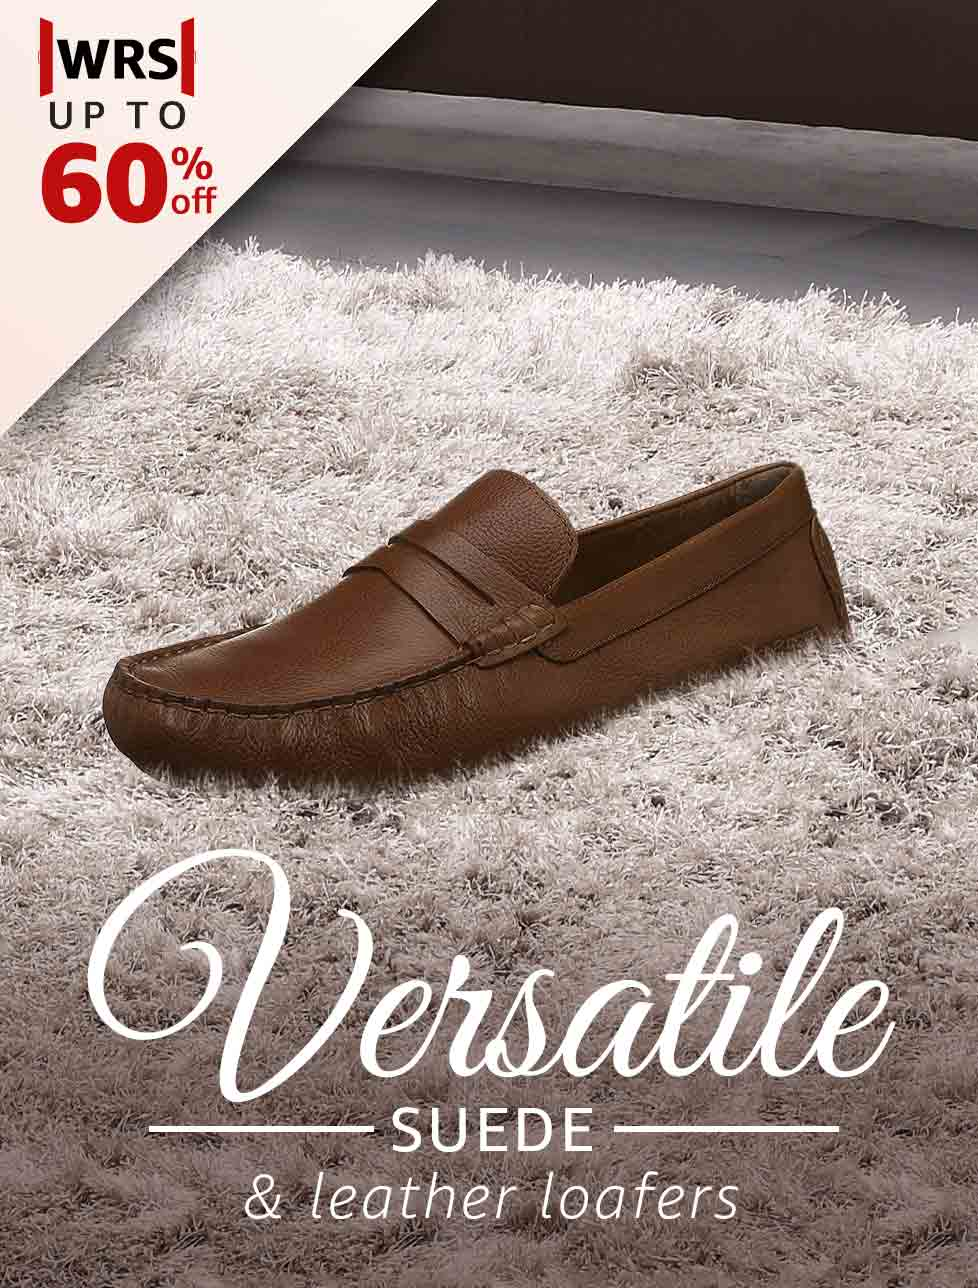 Versatile Suede & Leather Loafers